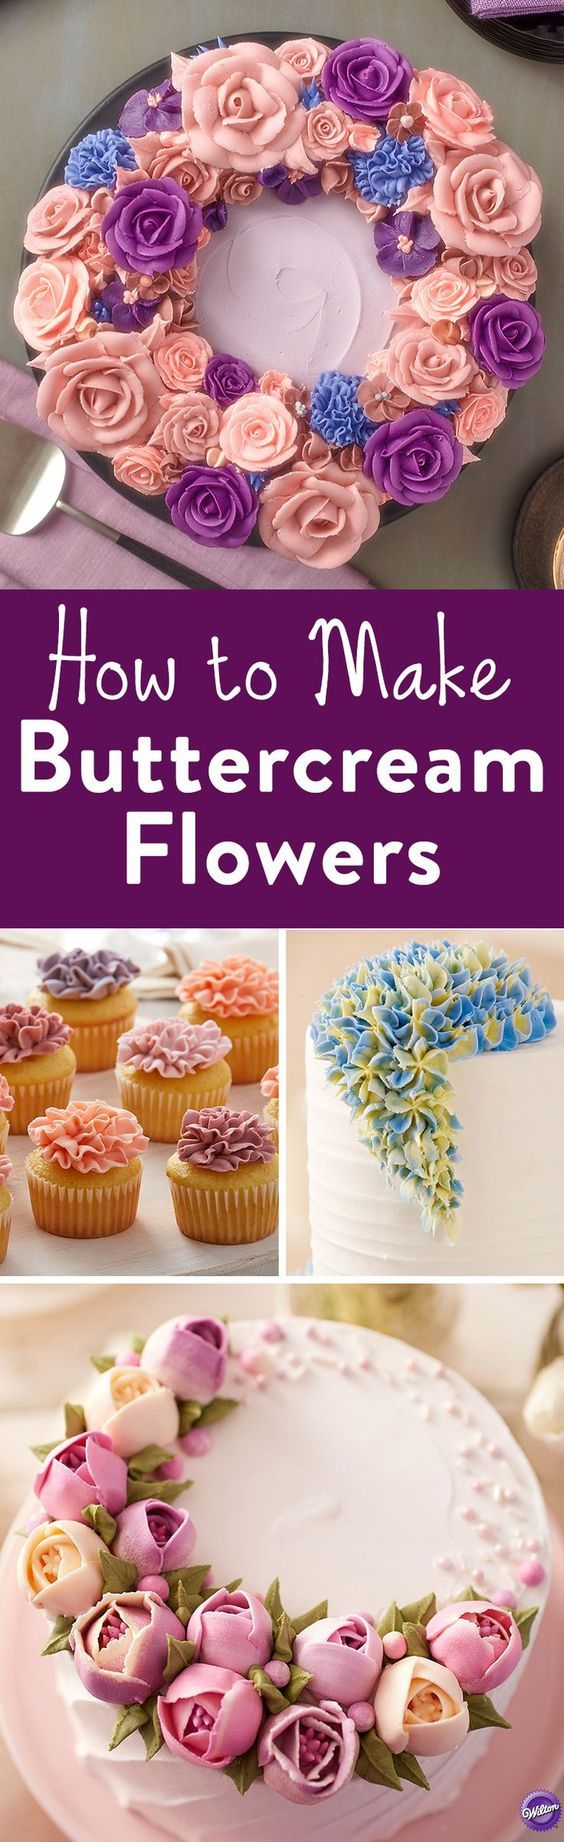 Buttercream Flower Wreath Cakes & Other Floral Techniques #cupcakefrostingtips